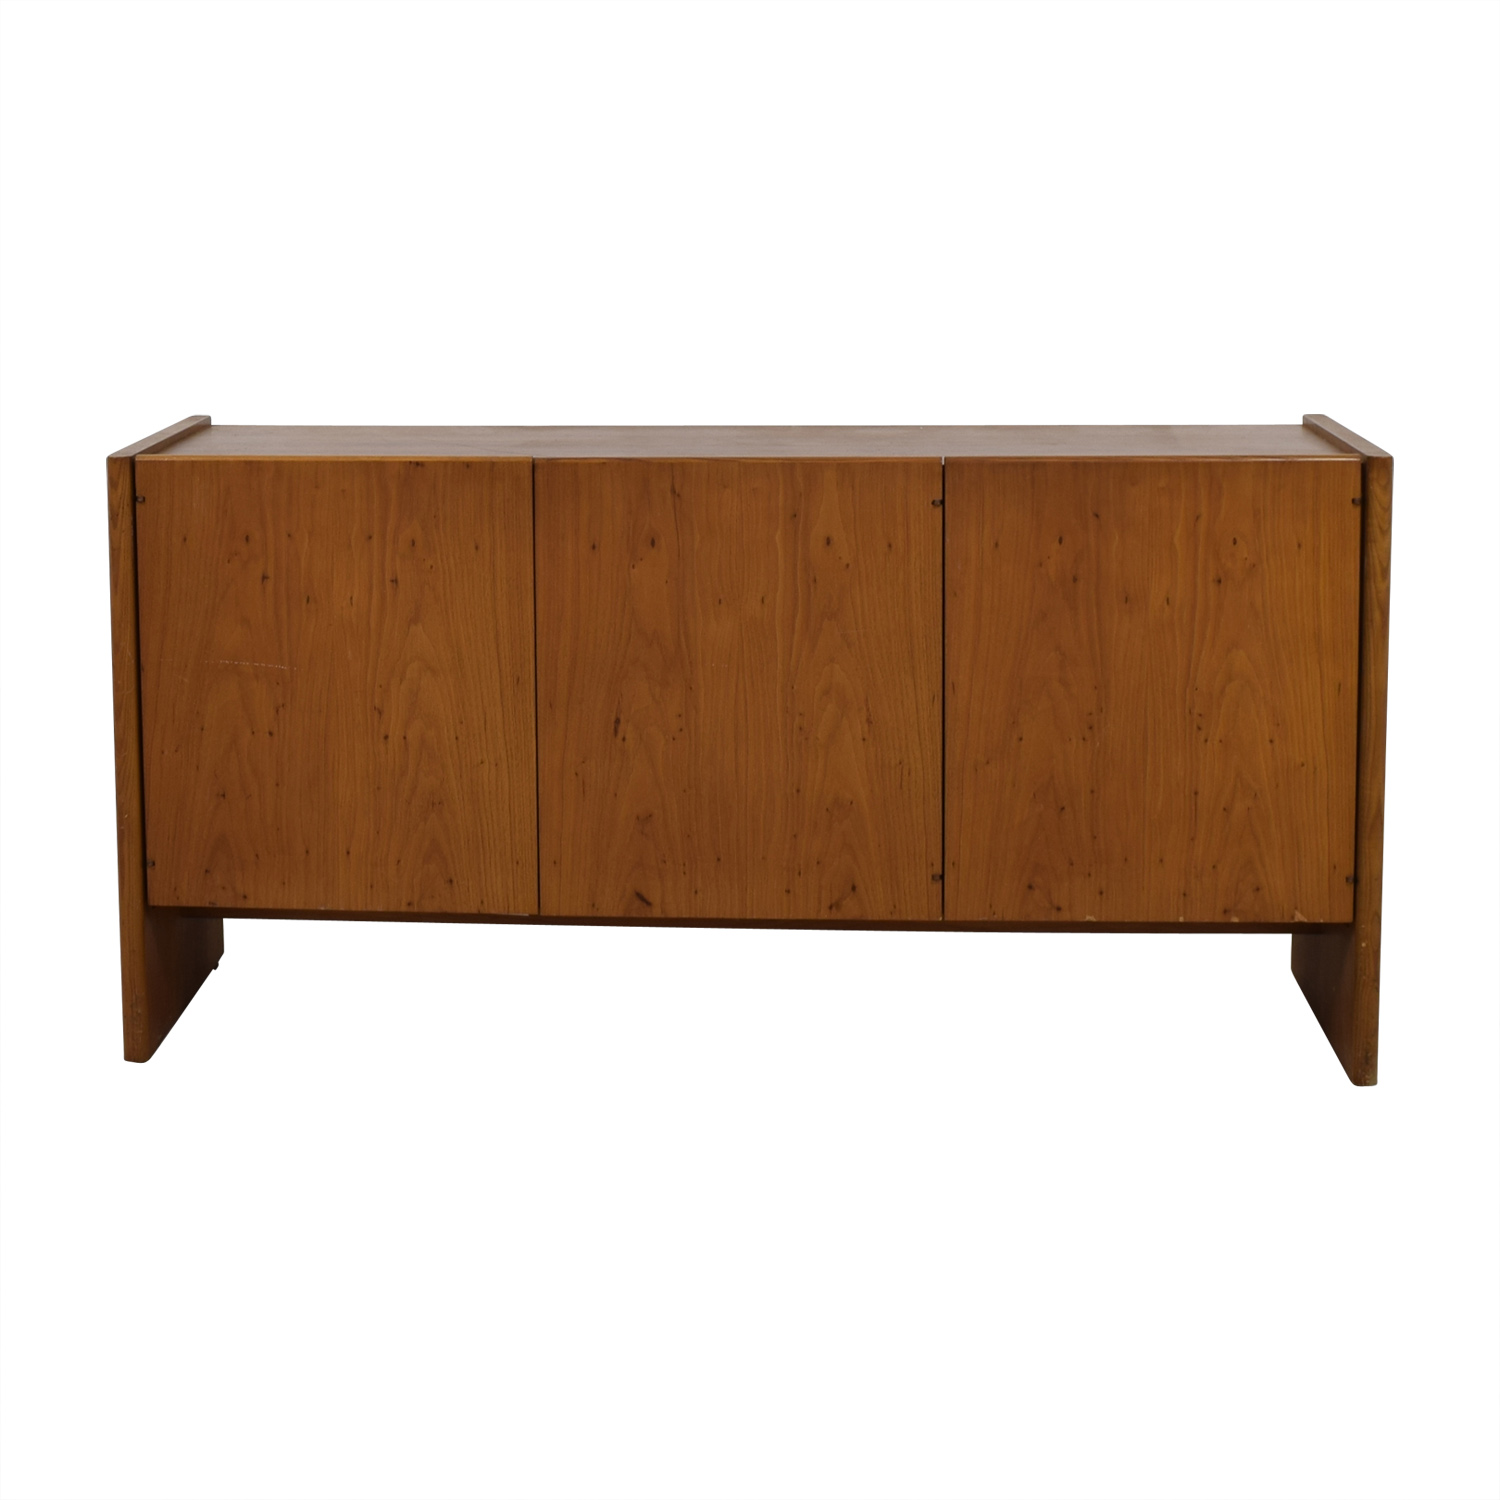 Single Drawer with Shelves Buffet nyc